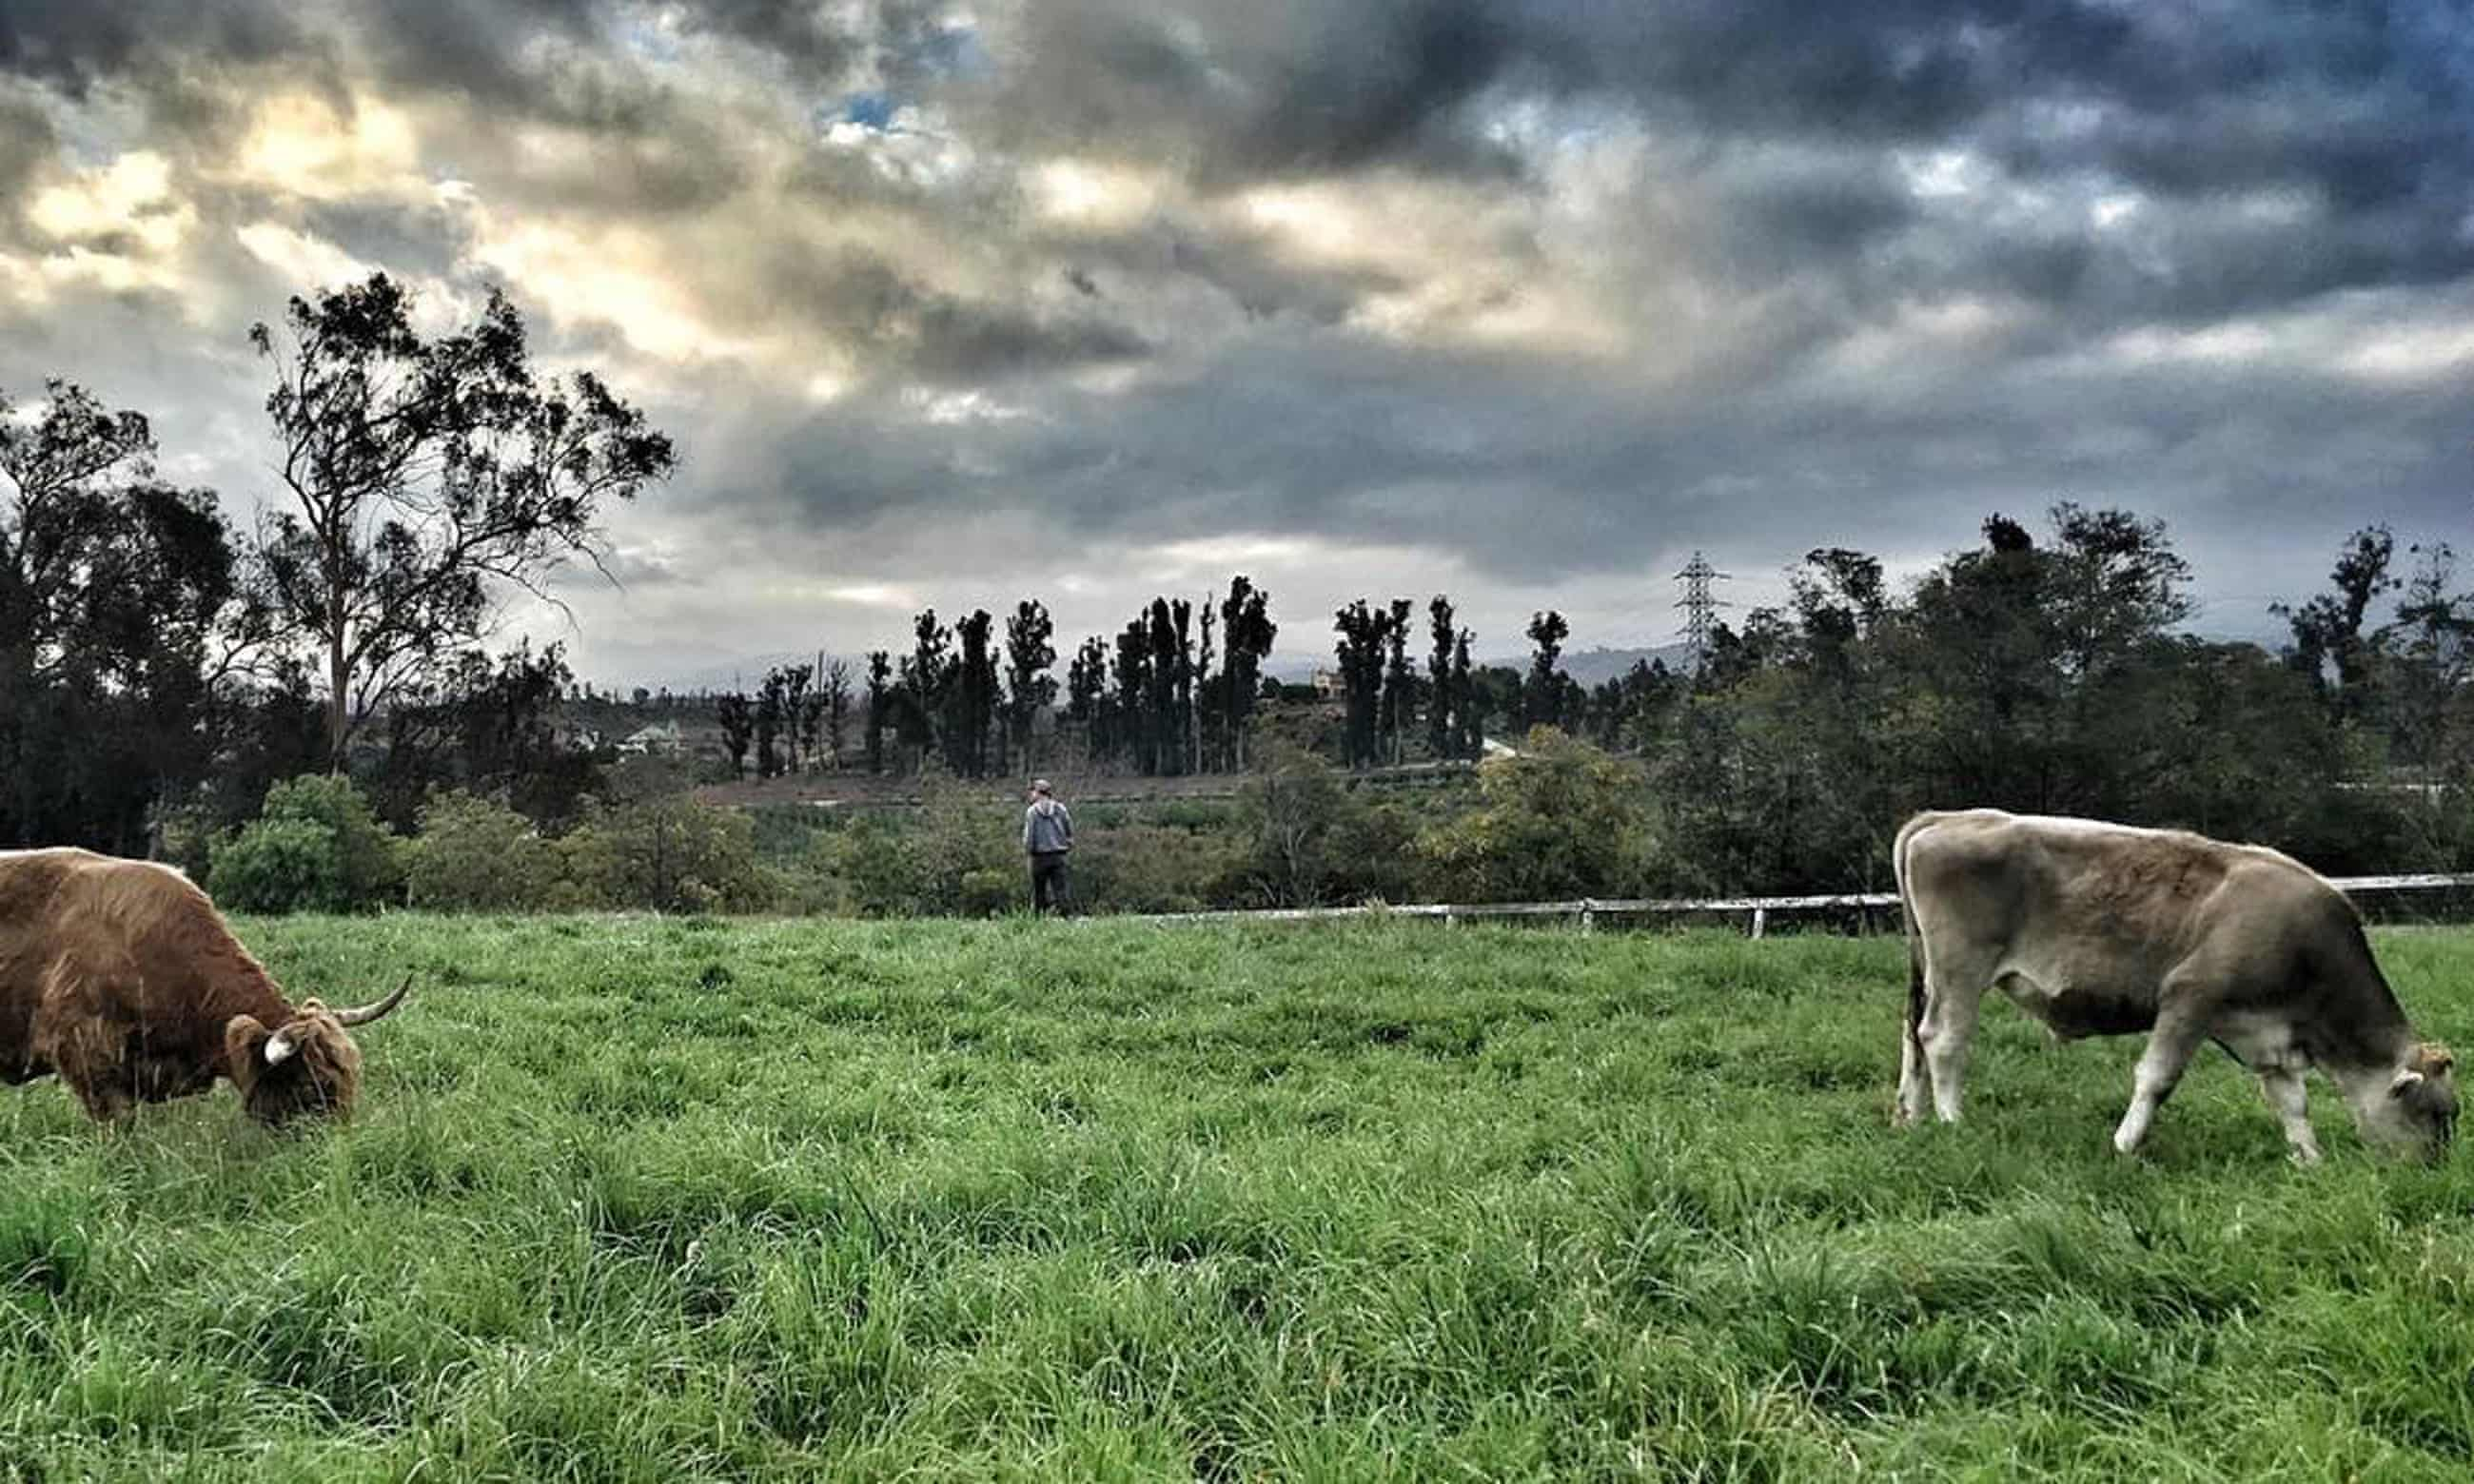 Biodynamic farming is on the rise – but how effective is this alternative agricultural practice?